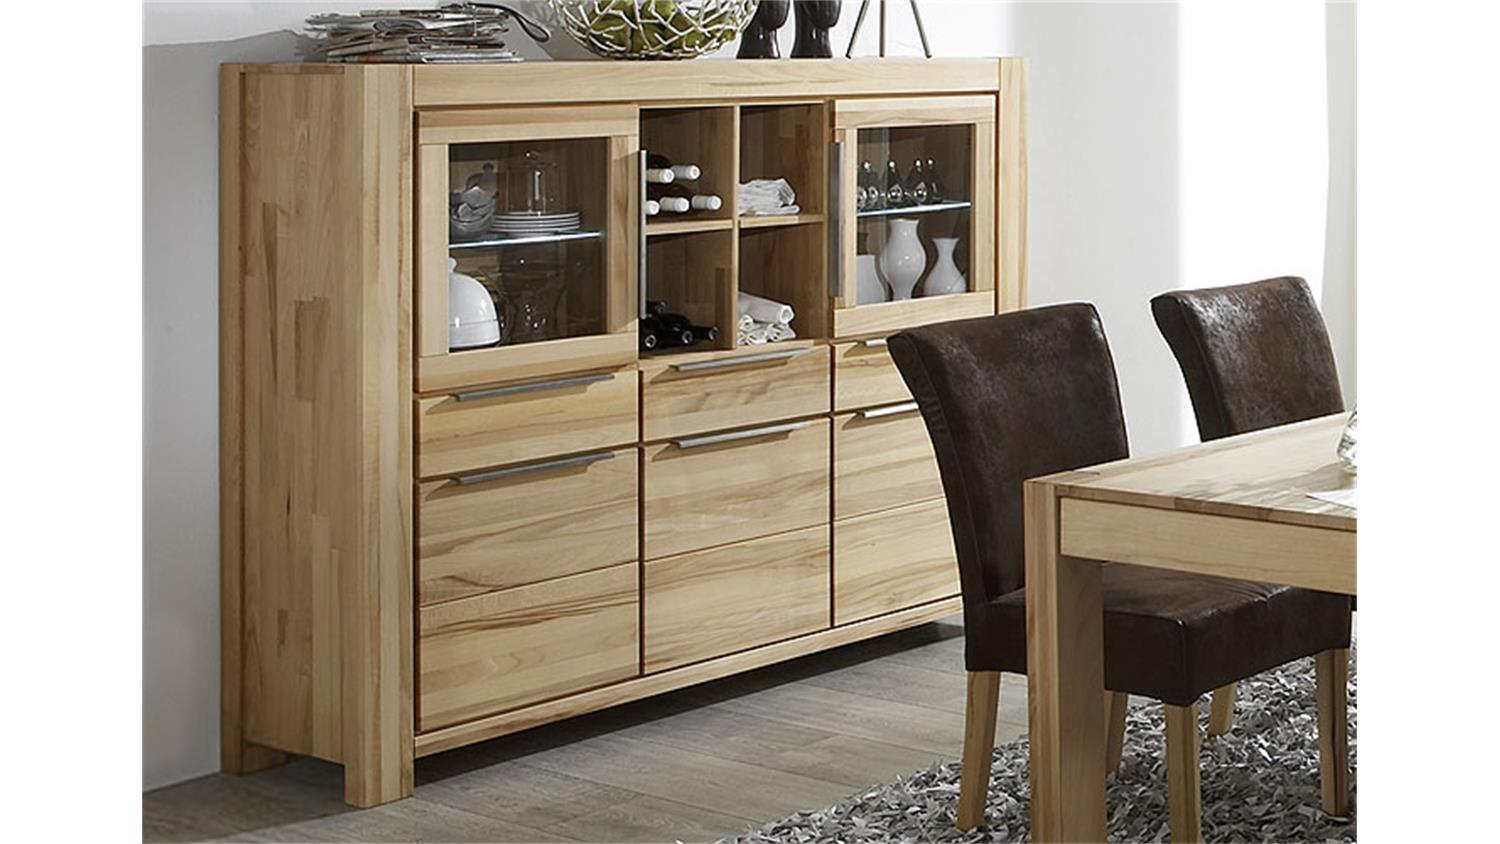 highboard nena sideboard vitrine in kernbuche massiv ge lt. Black Bedroom Furniture Sets. Home Design Ideas